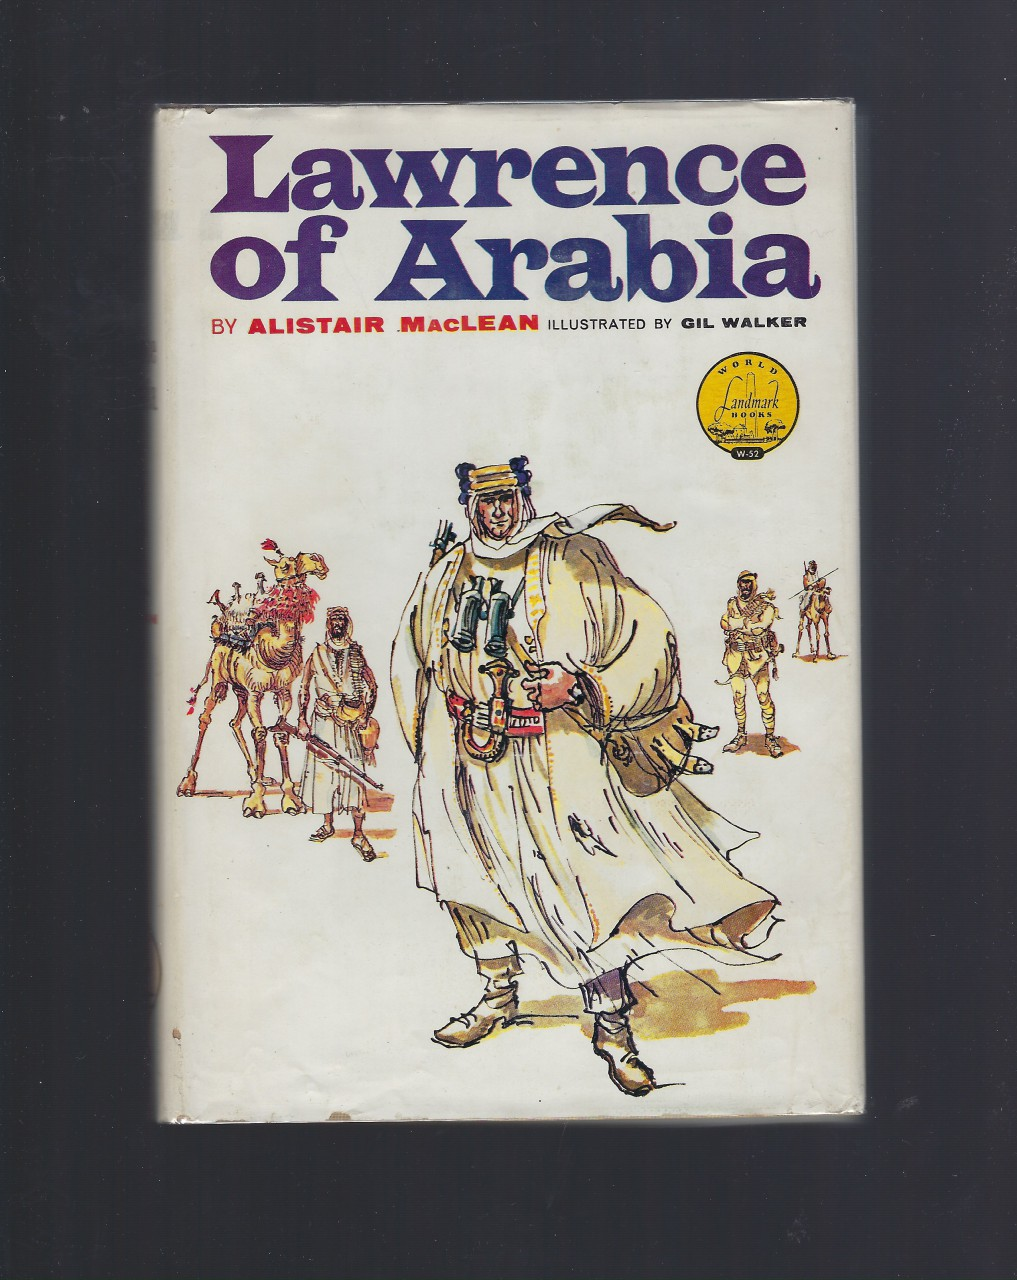 Lawrence of Arabia World Landmark #52 w Author Letter HB/DJ, Alistair Maclean